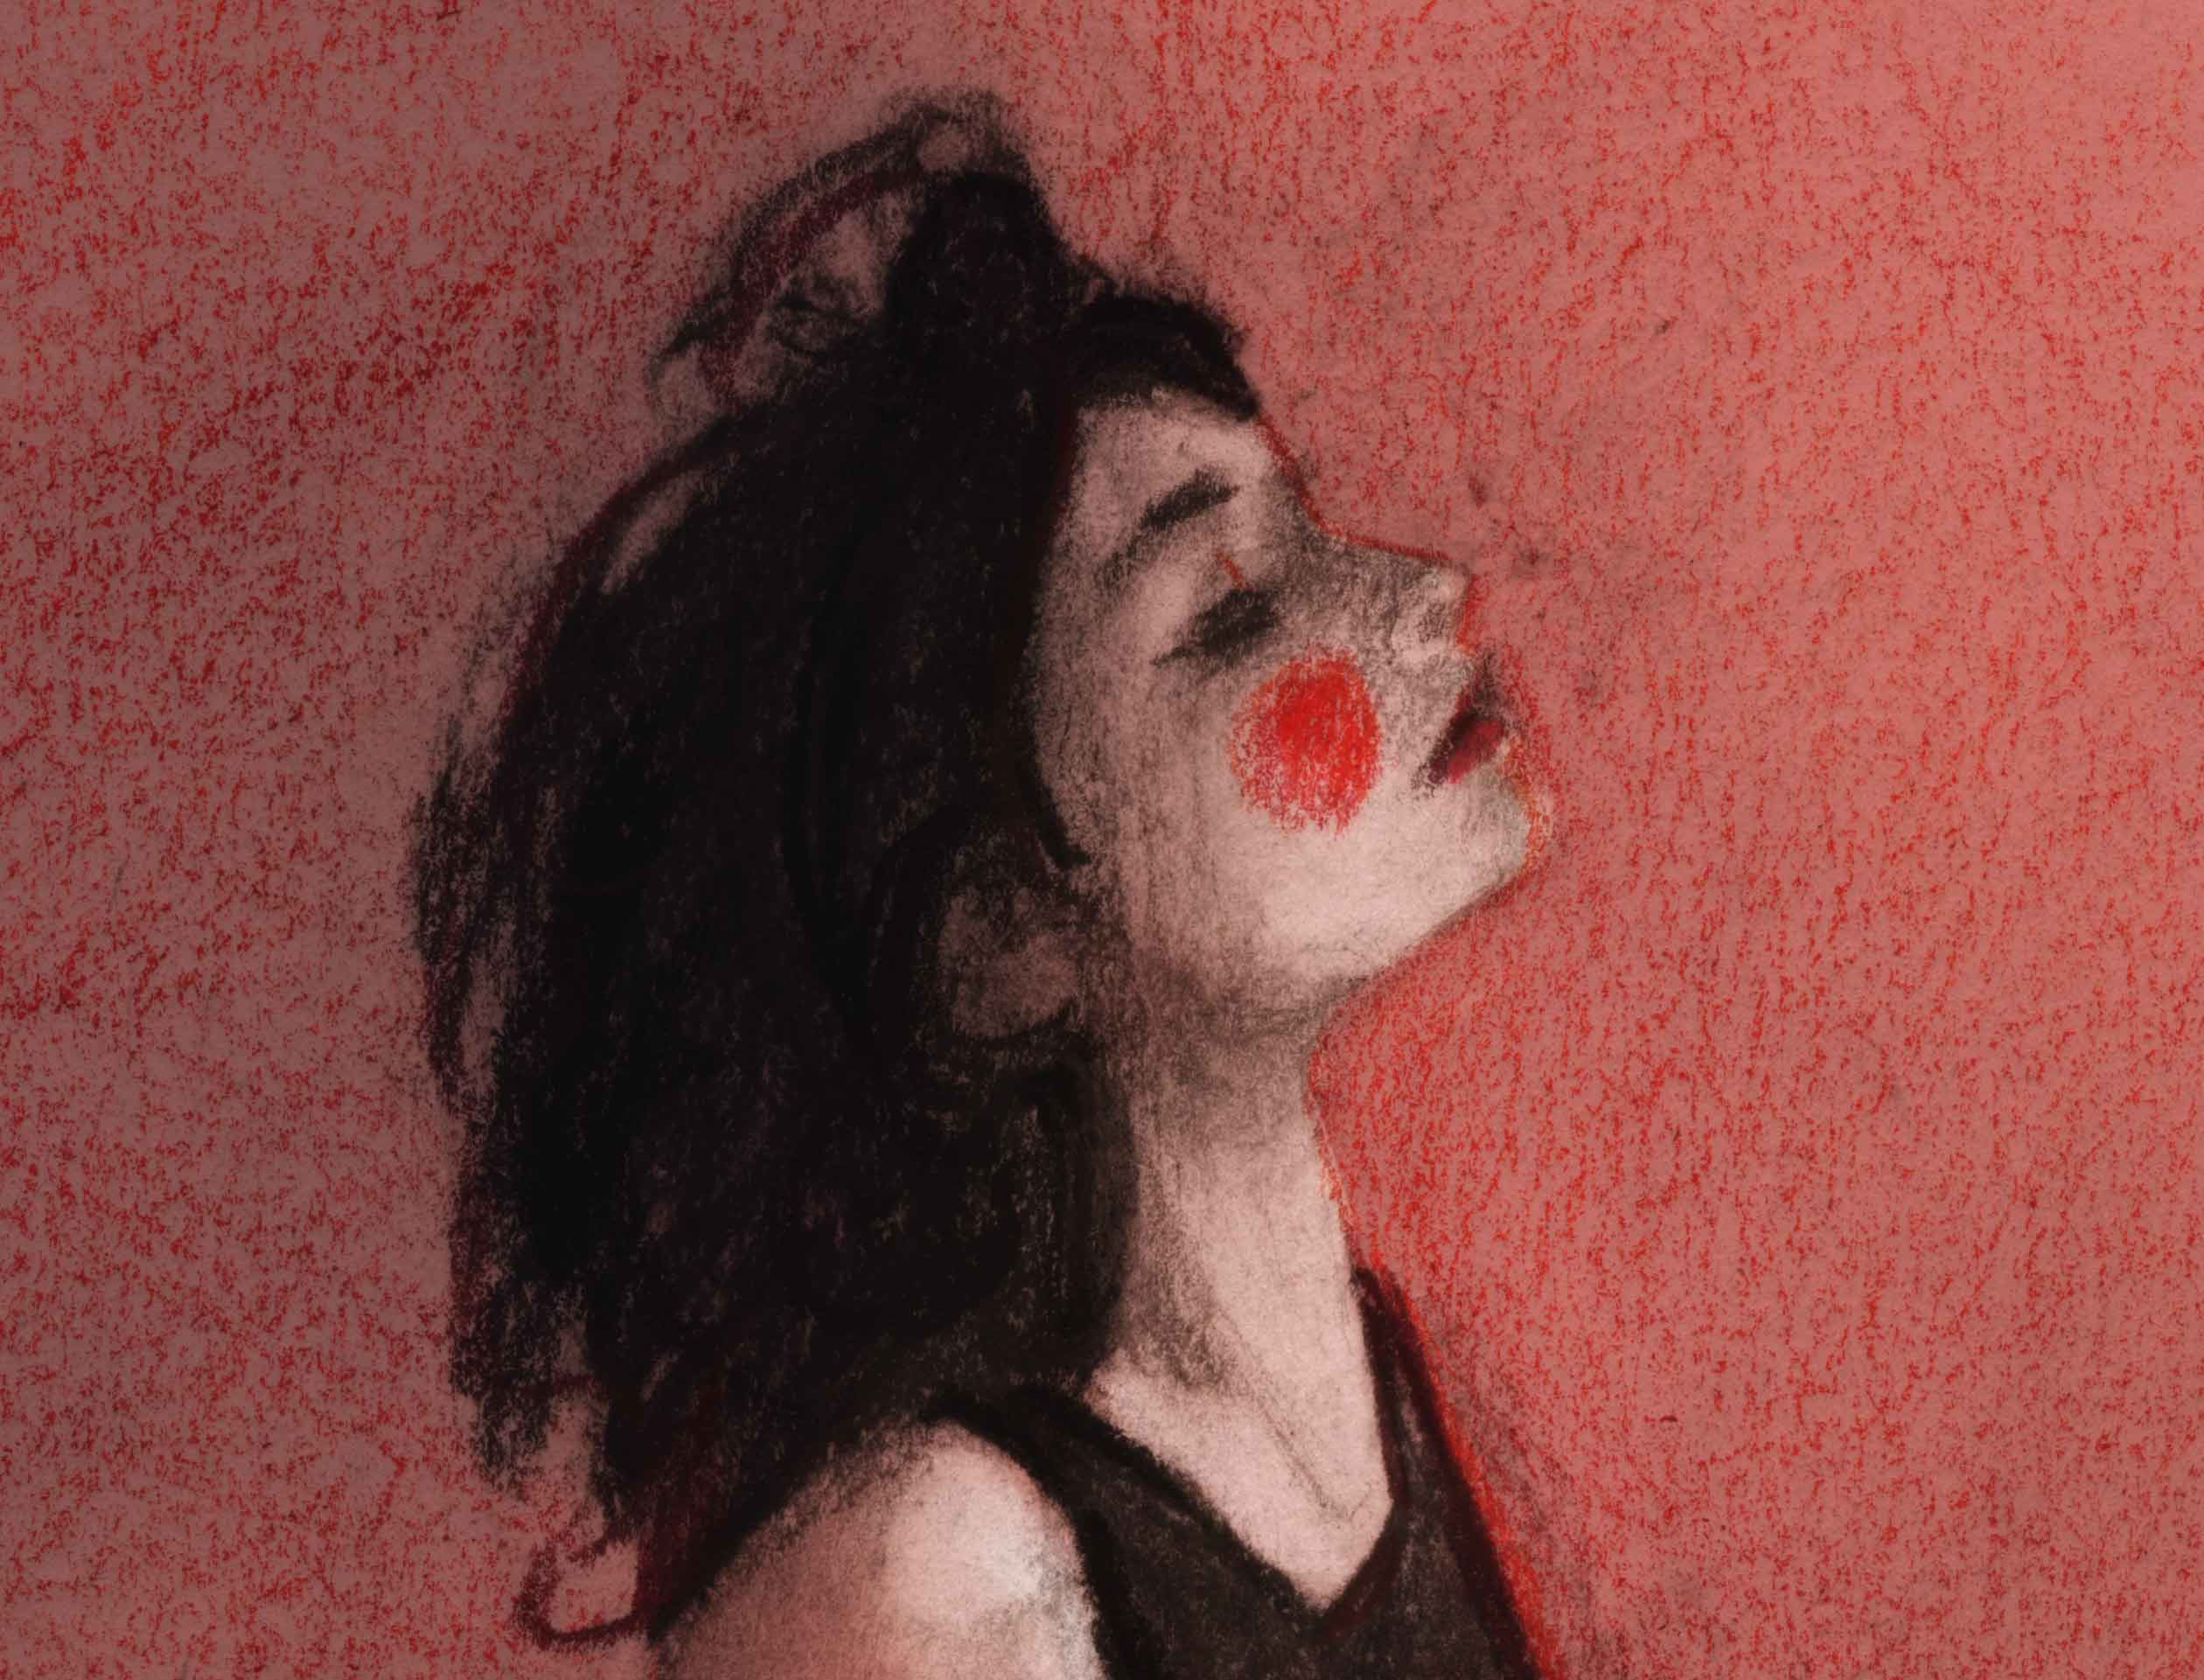 Details close up of beautiful model artist Renata Gubaeva by fashion illustrator Danny Roberts mediums are media sketch. Renata is sitting on the ground all red with red lips